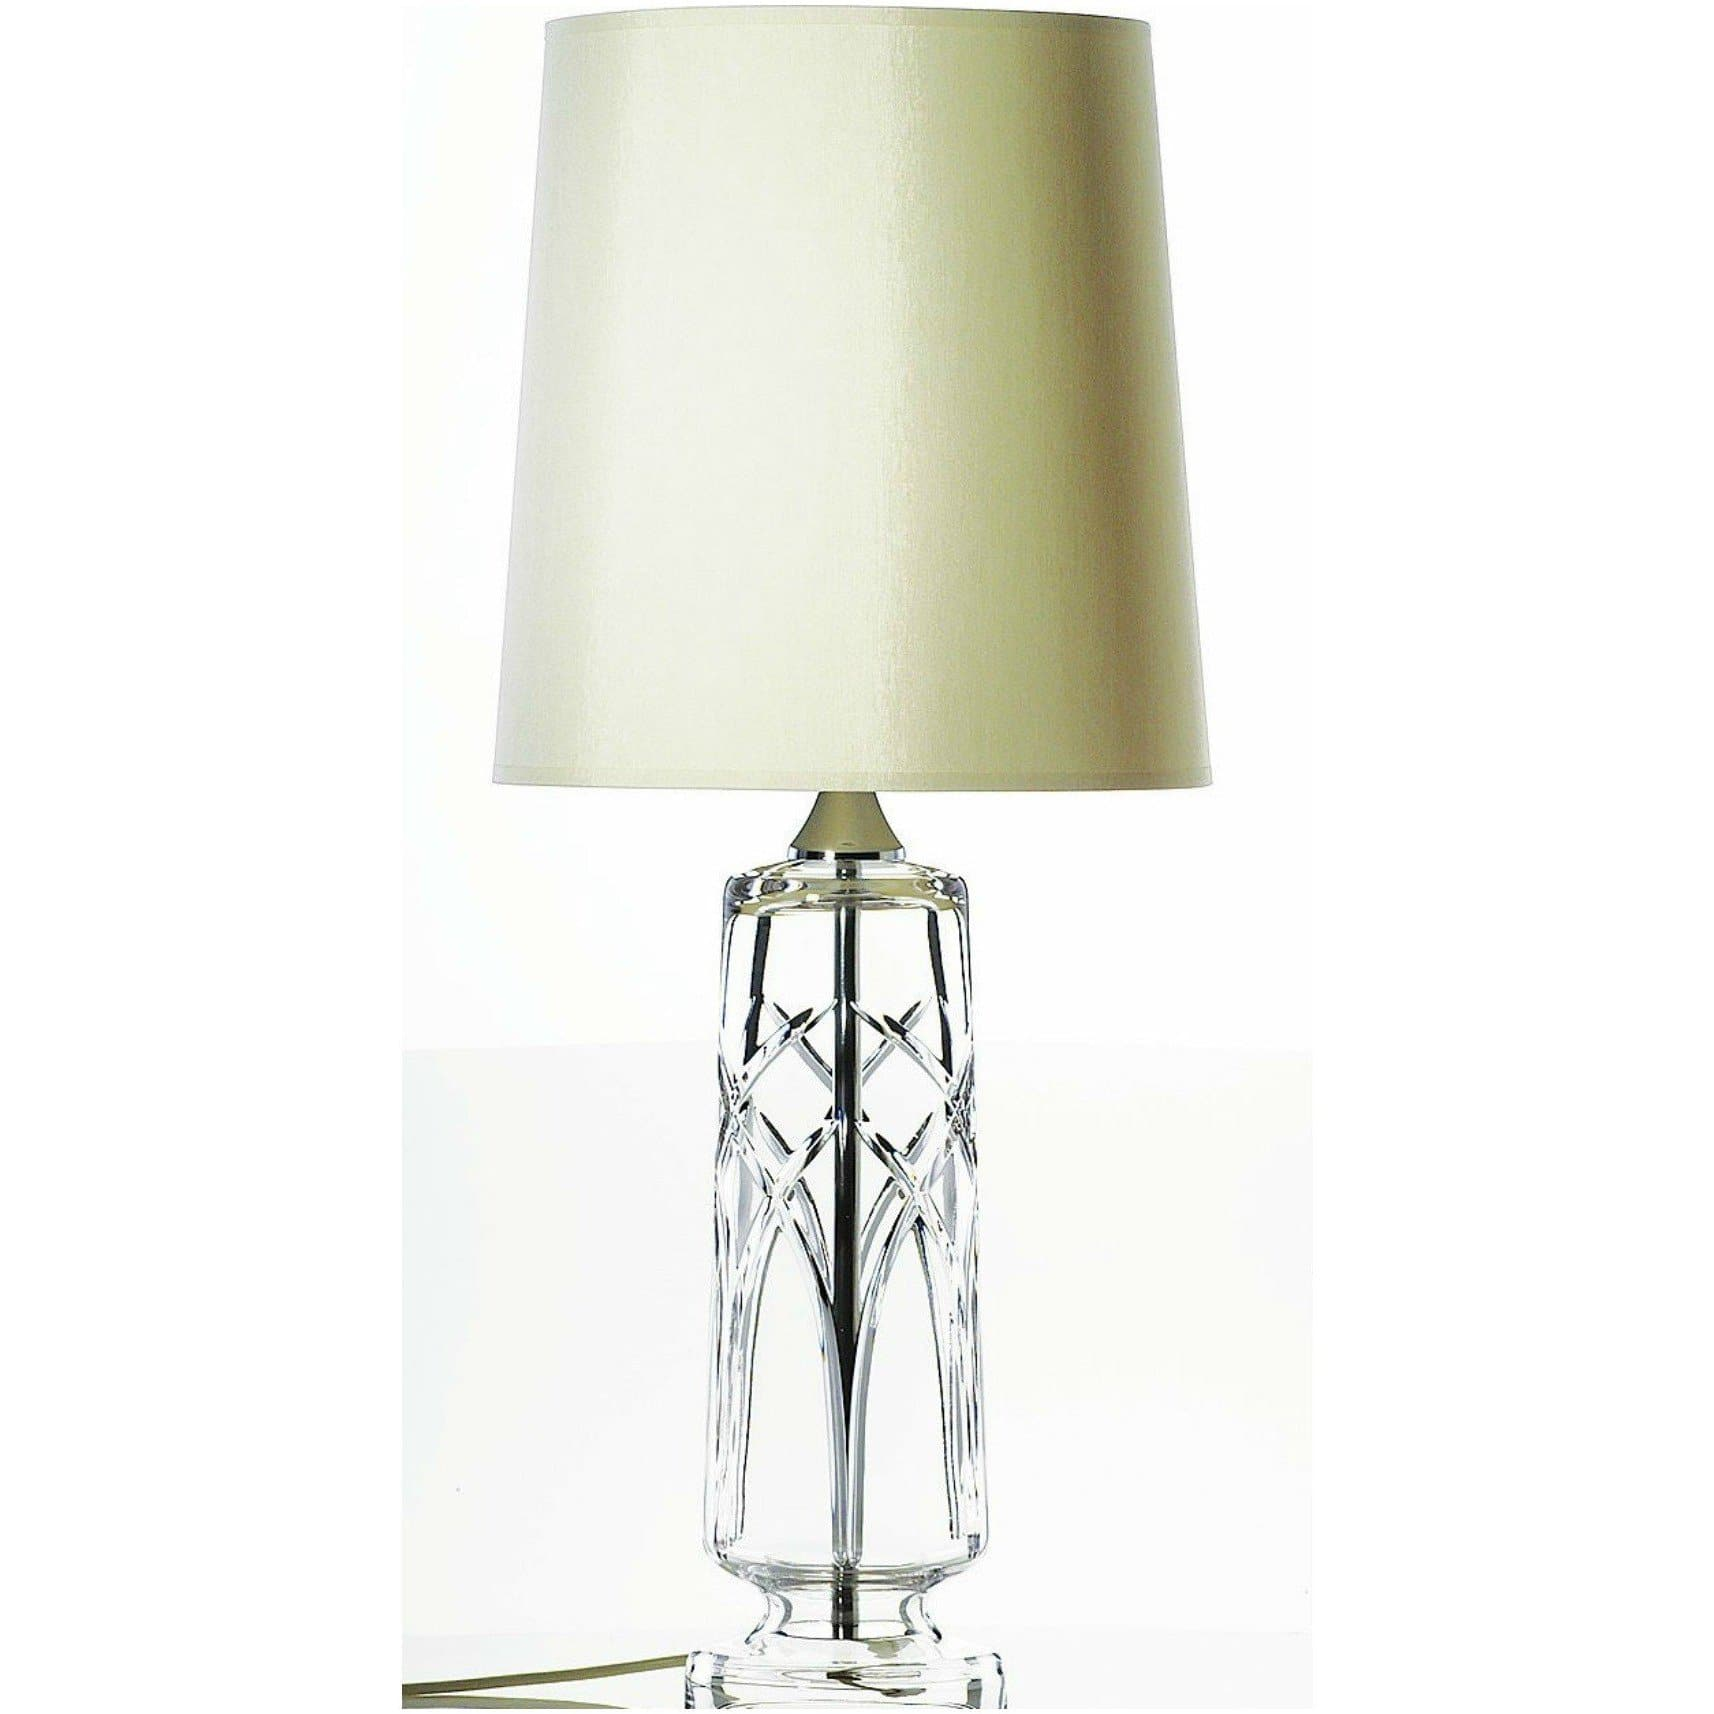 "Mystique 16"" Lamp & Shade (IRL/UK Fittings) (CL316)"